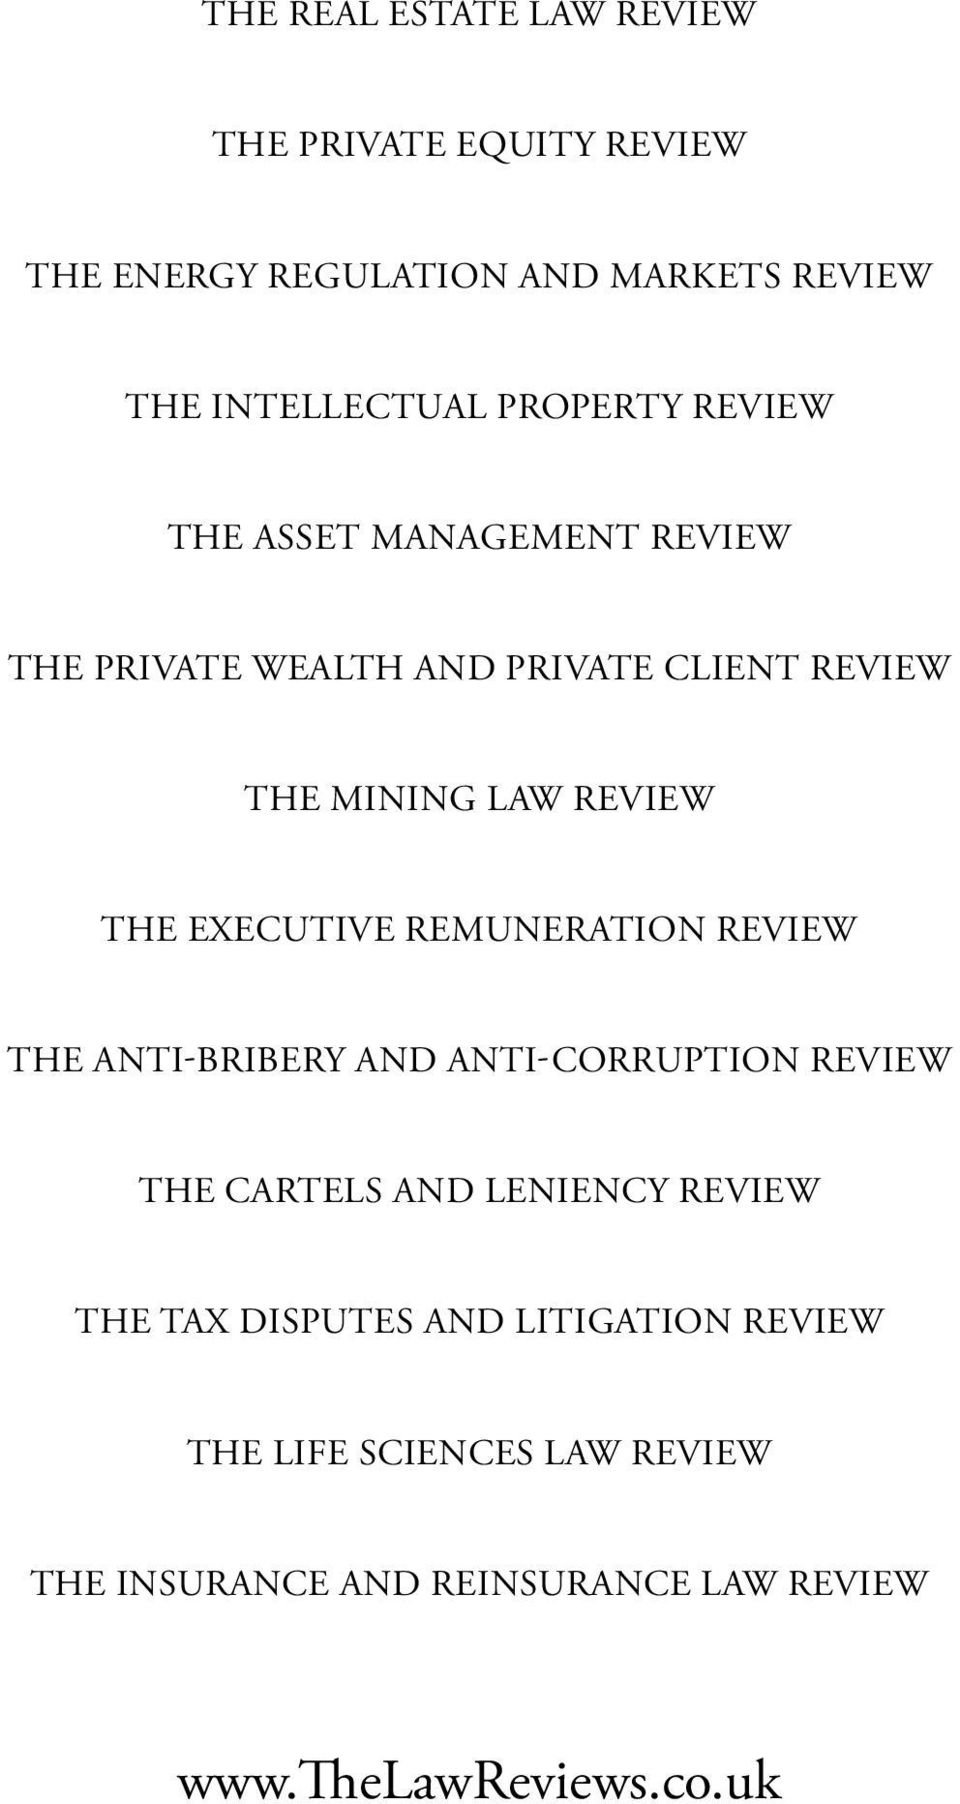 executive remuneration review The anti-bribery and anti-corruption review The Cartels and leniency review The Tax